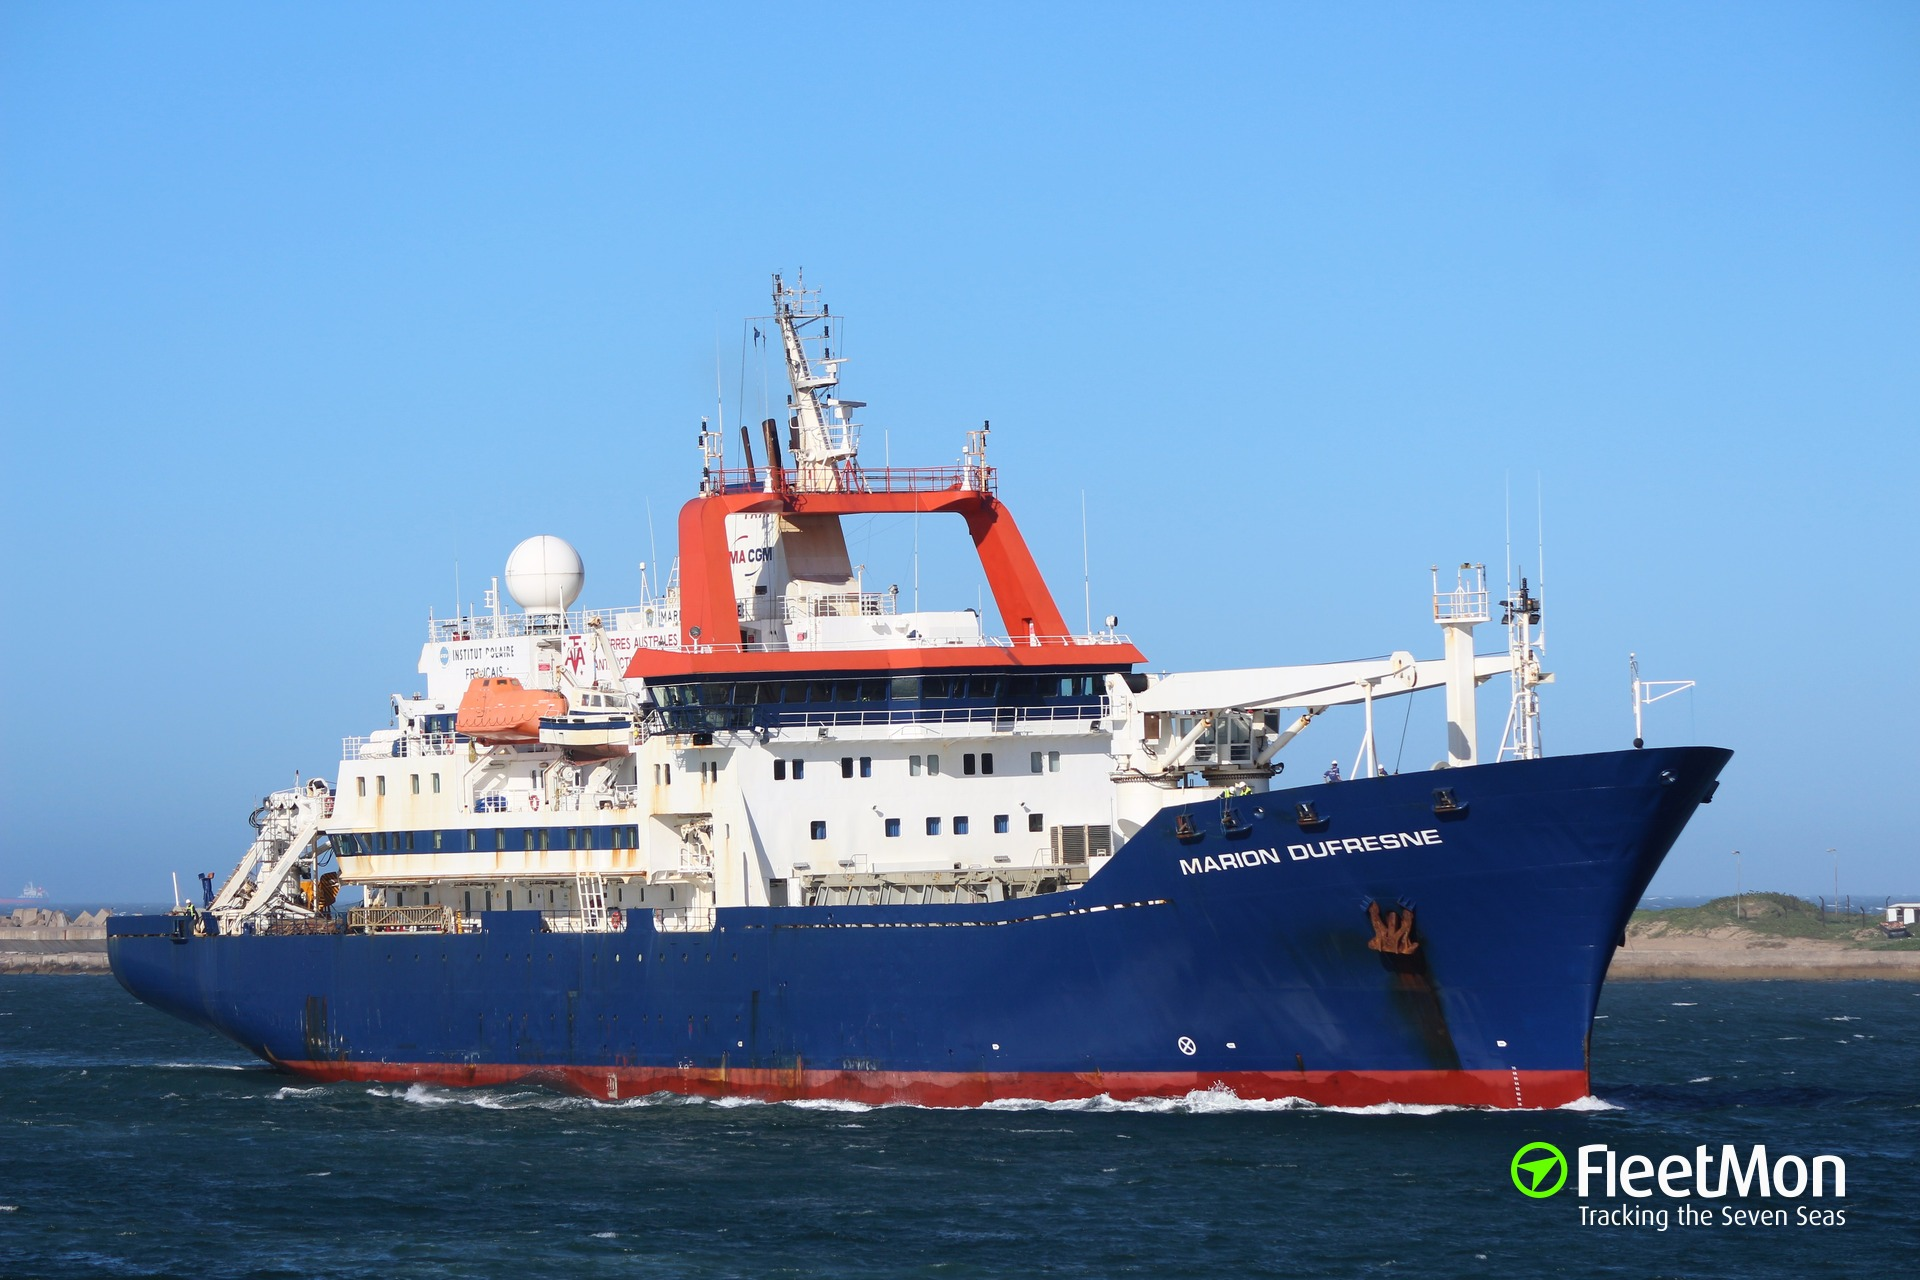 French research vessel Marion Dufrense aground and breached, Indian ocean